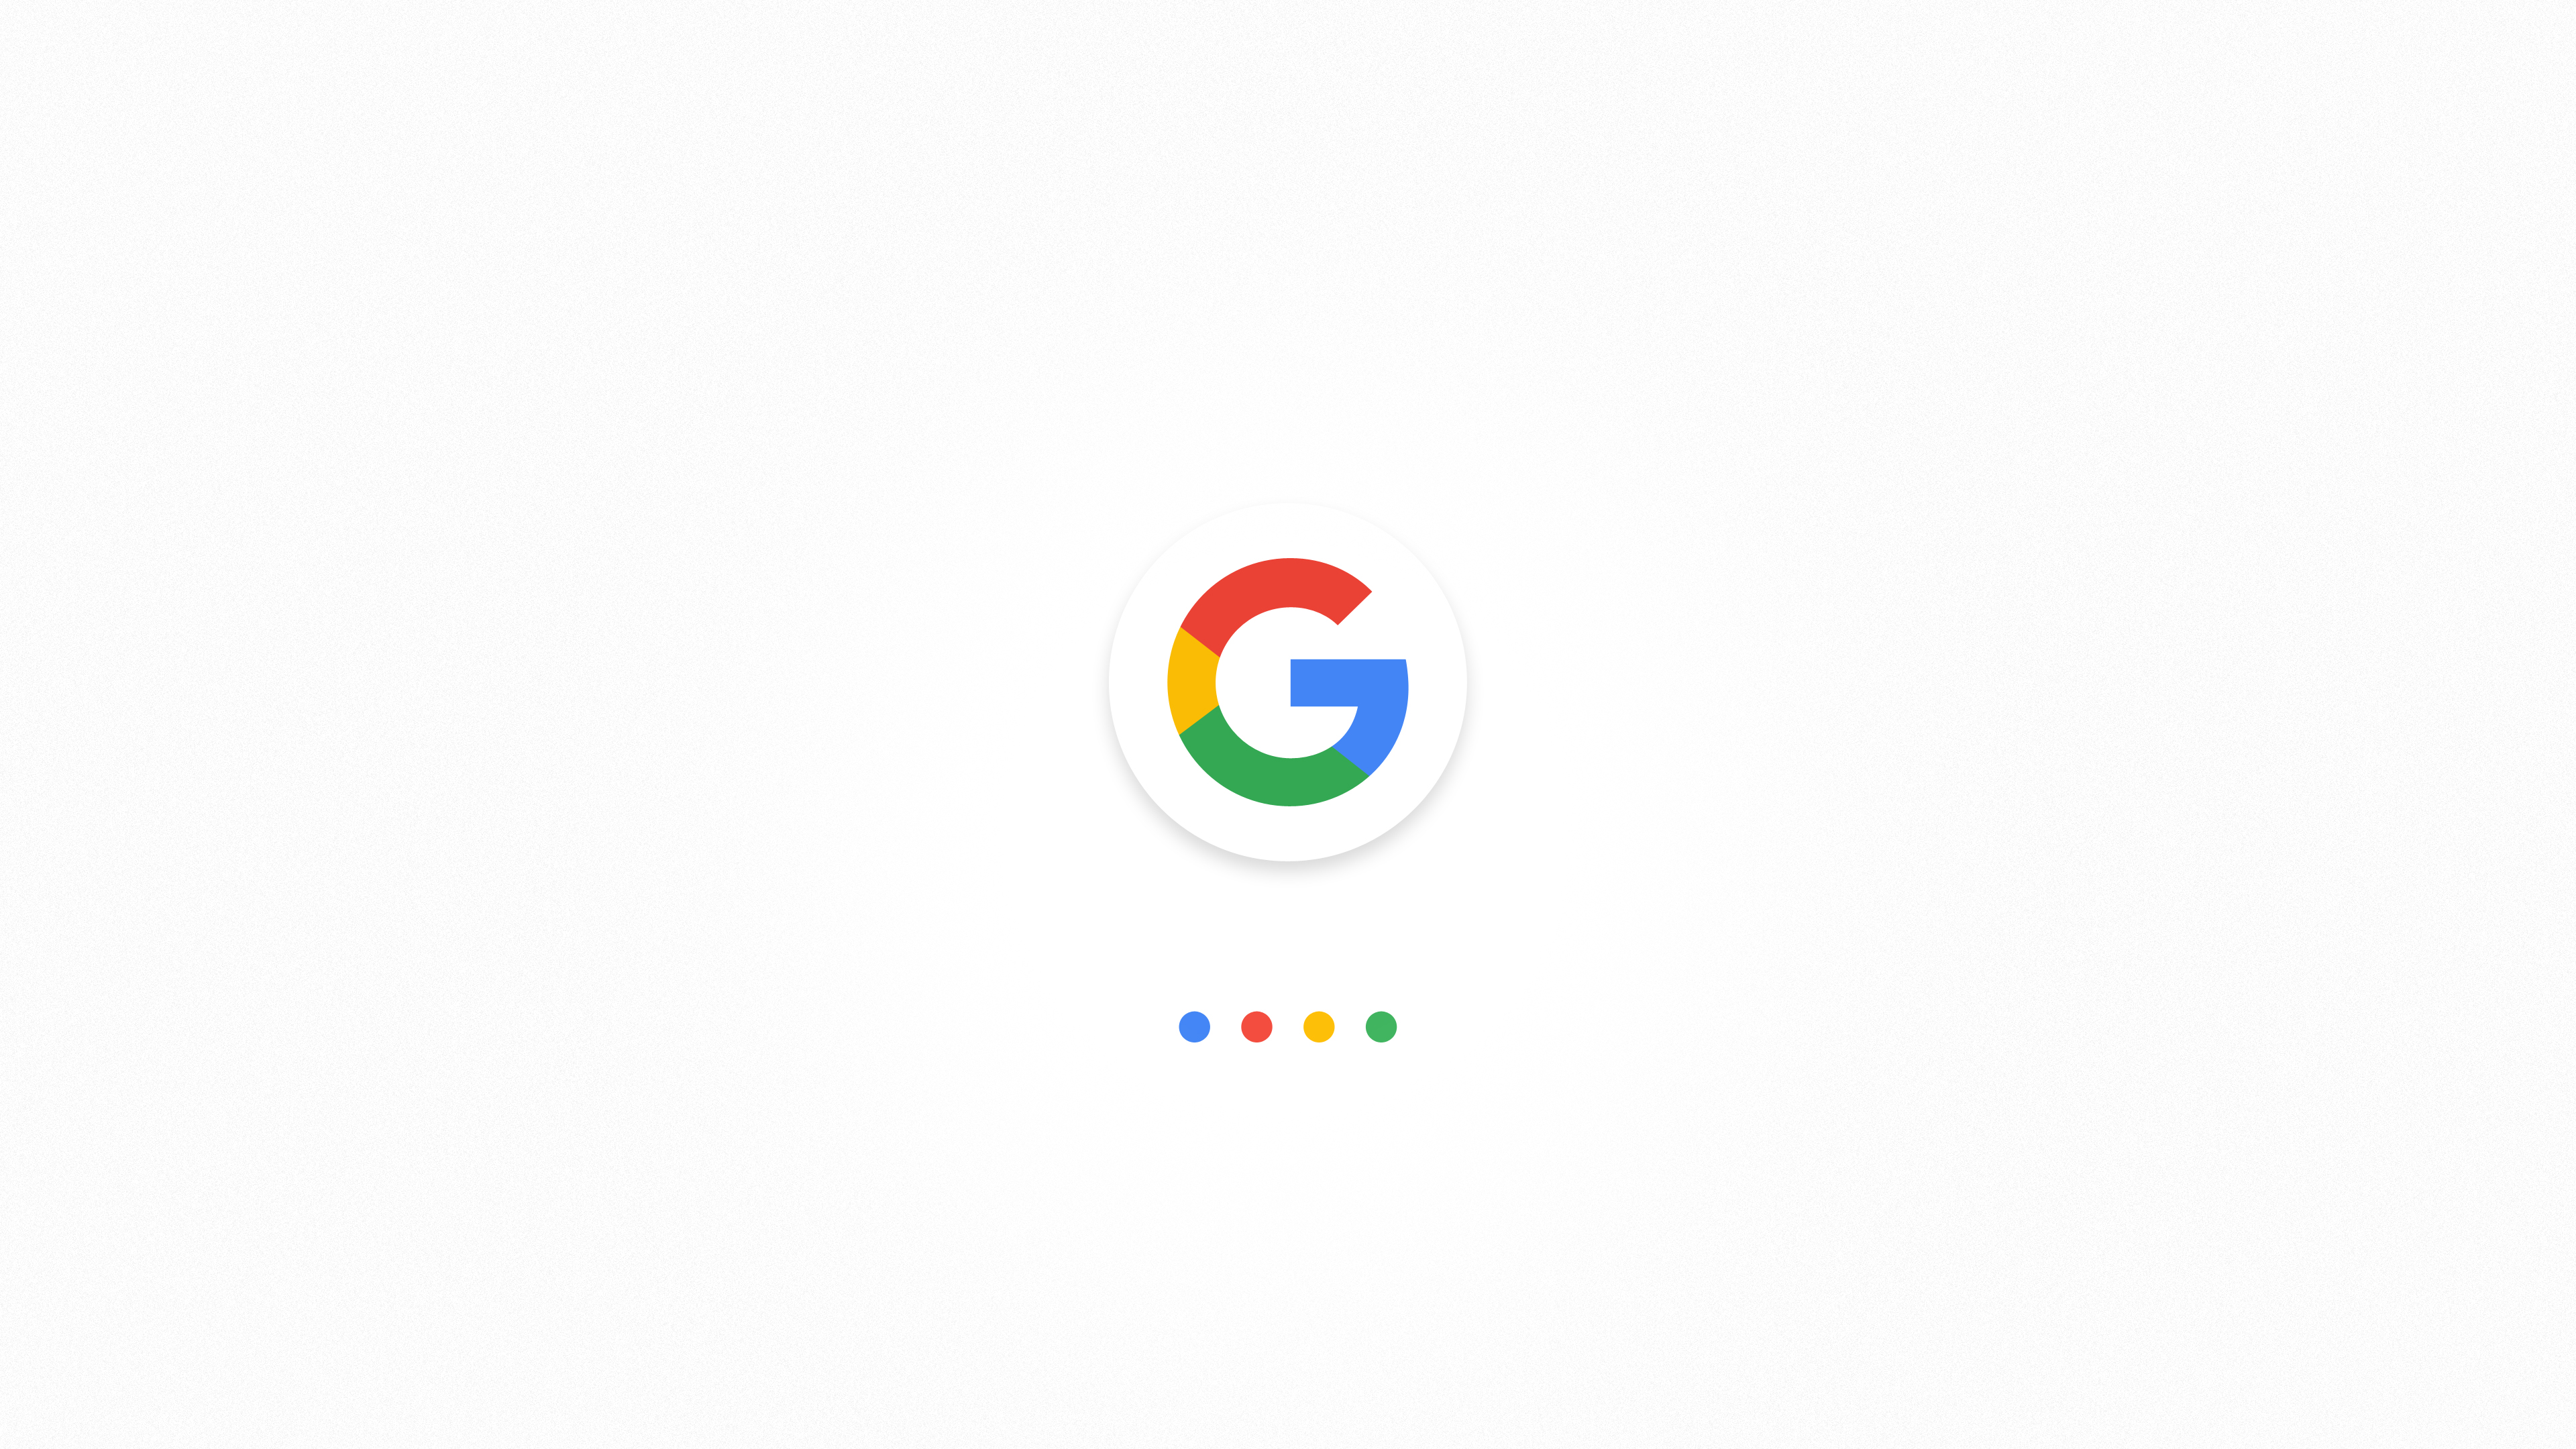 18653 google wallpaper backgrounds 3840x2160